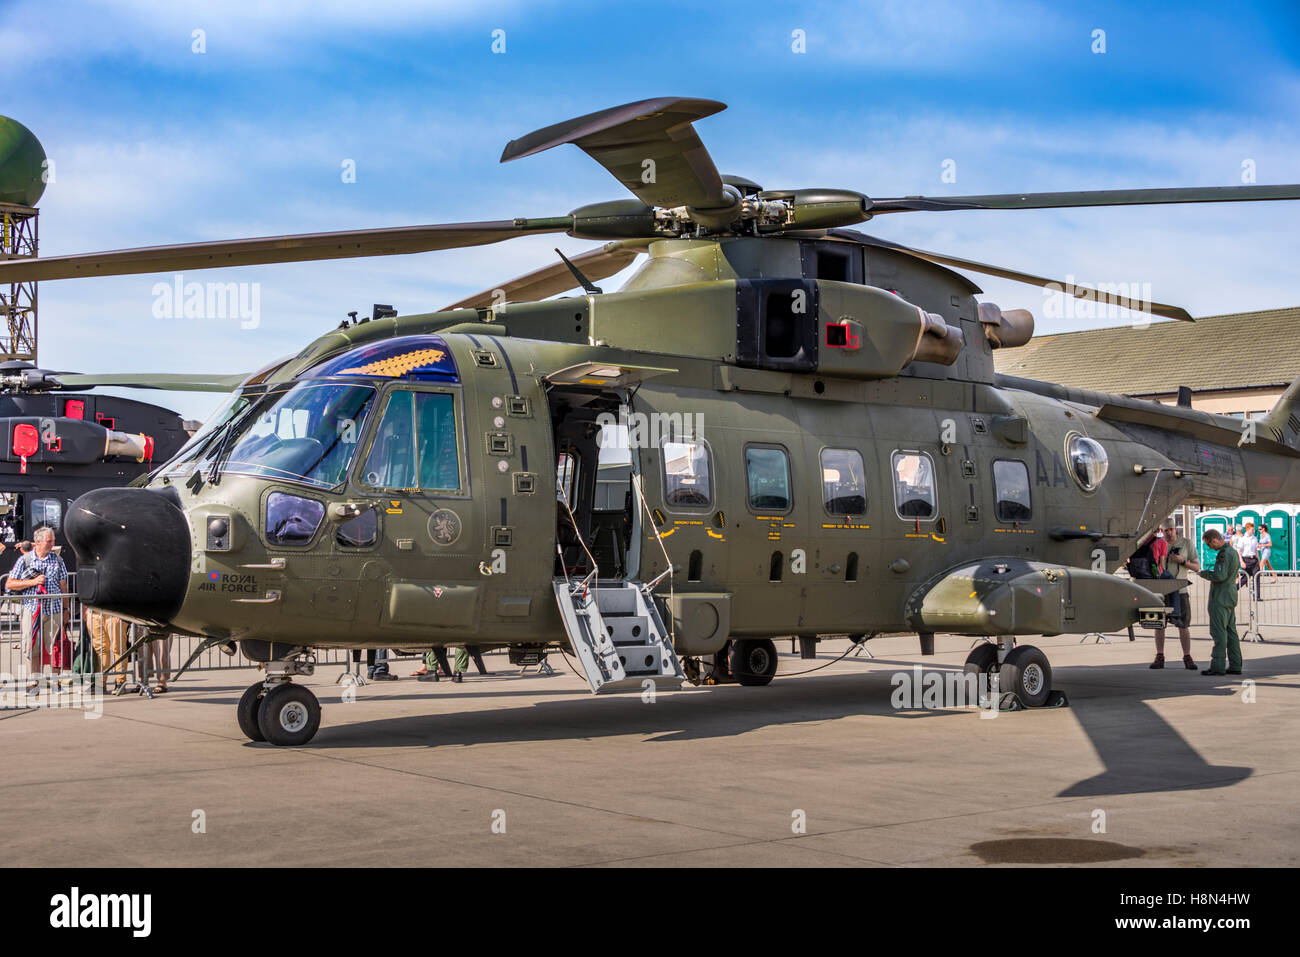 Merlin HC3A (AgustaWestland AW101) helicopter on static display - Stock Image